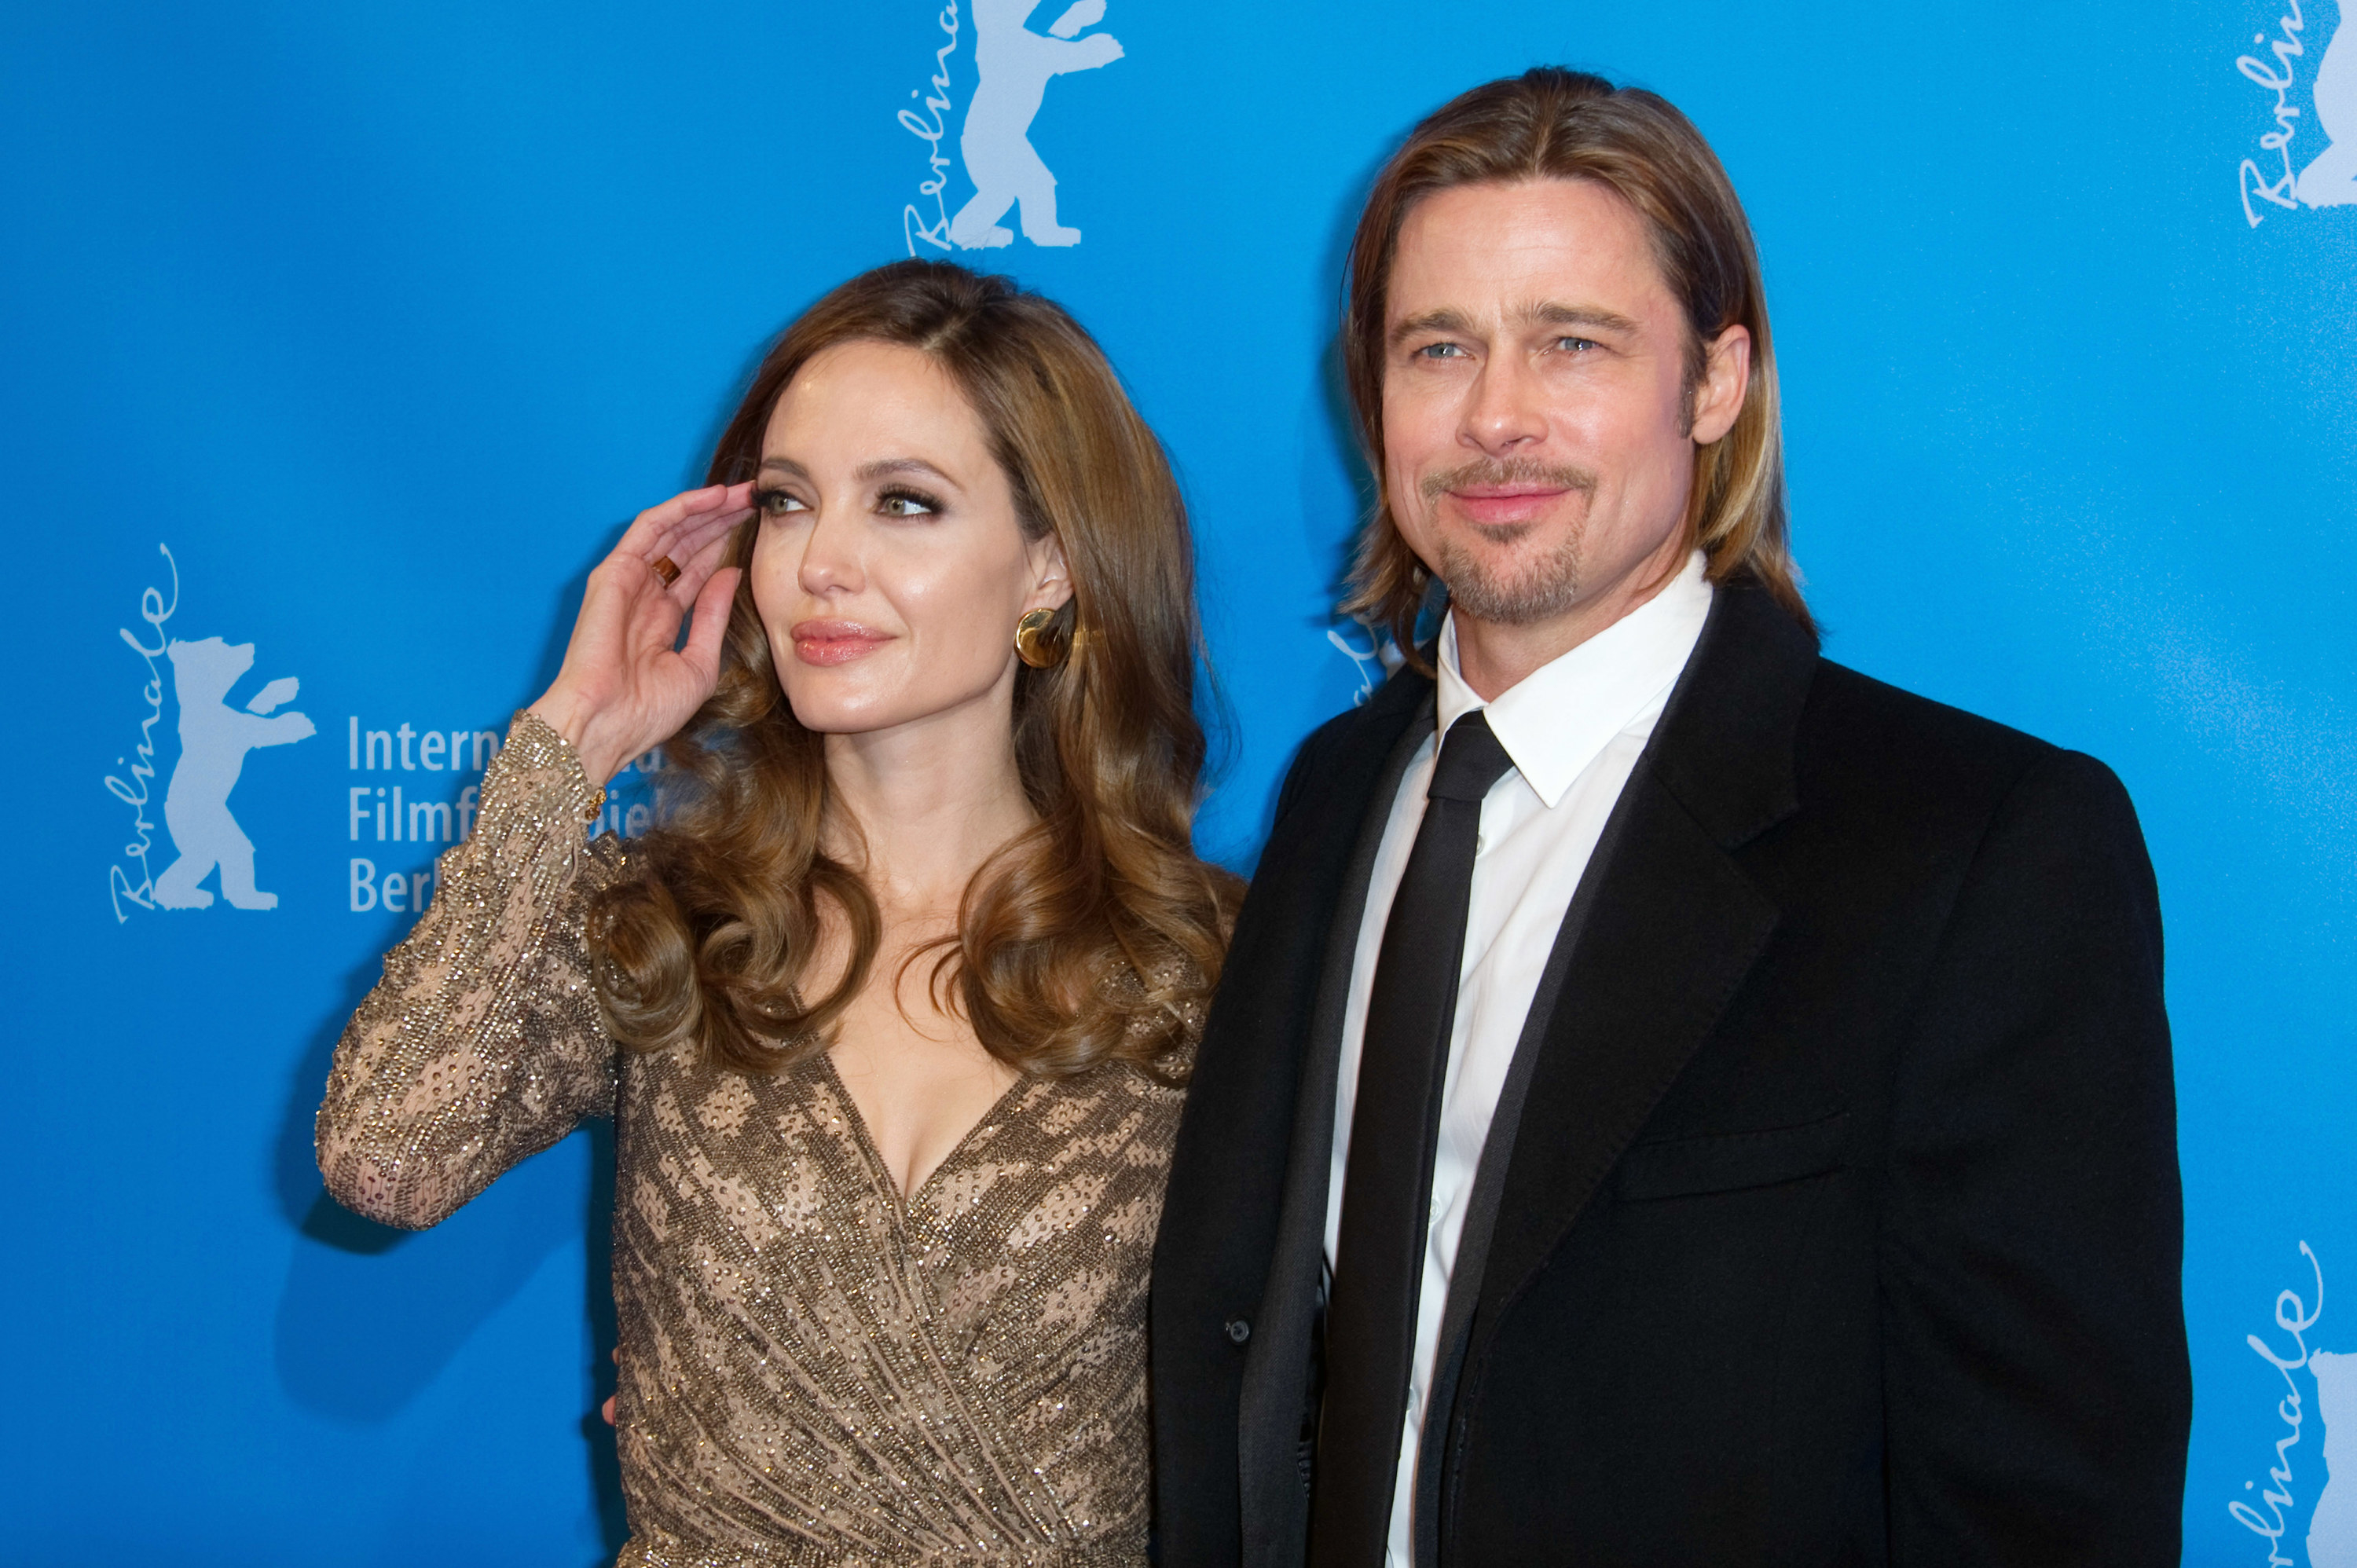 Angelina and Brad on the red carpet